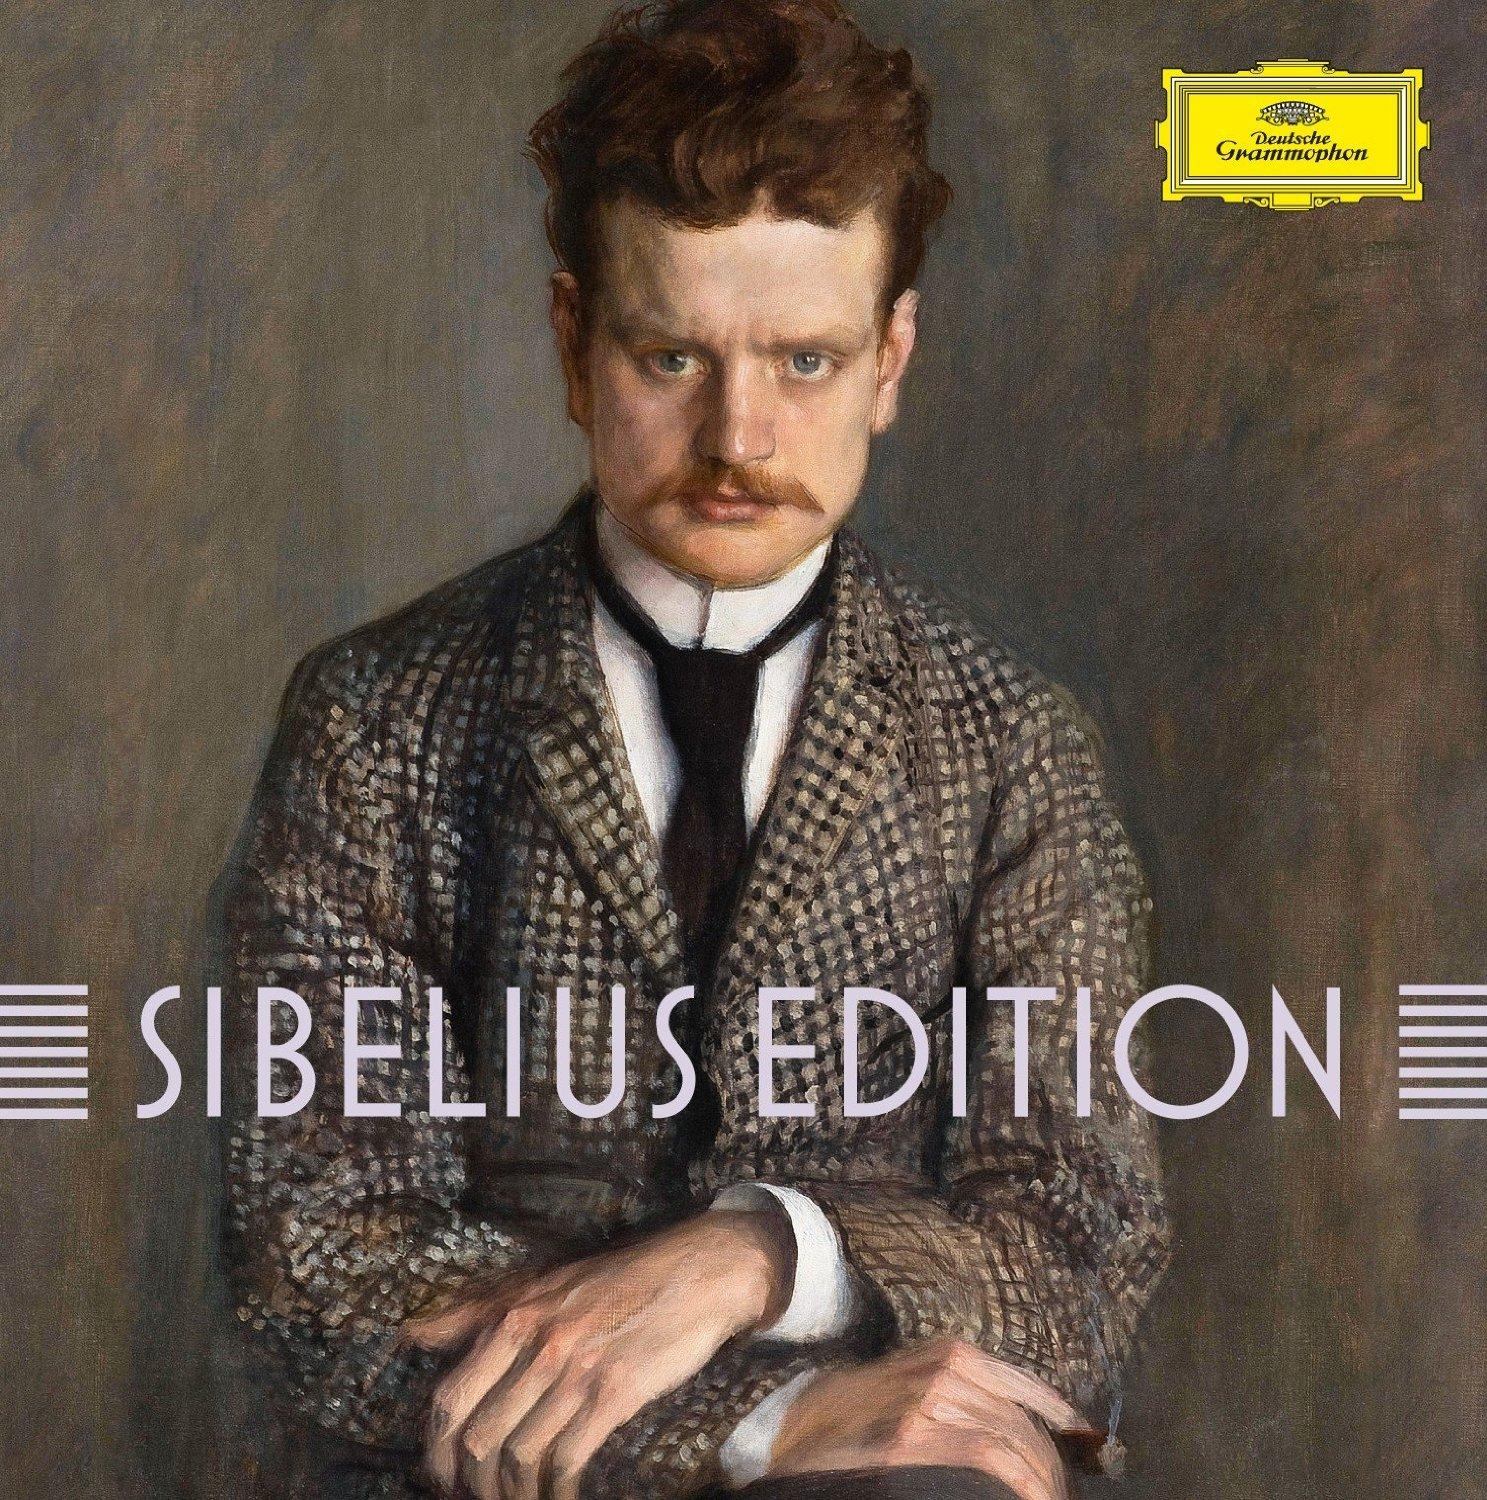 Sibelius Edition - all the composer's important works including the 7 symphonies, 'Kullervo', tone poems, concertos, stage music & songs / Anne- Sophie Mutter, violin [14 CDs]